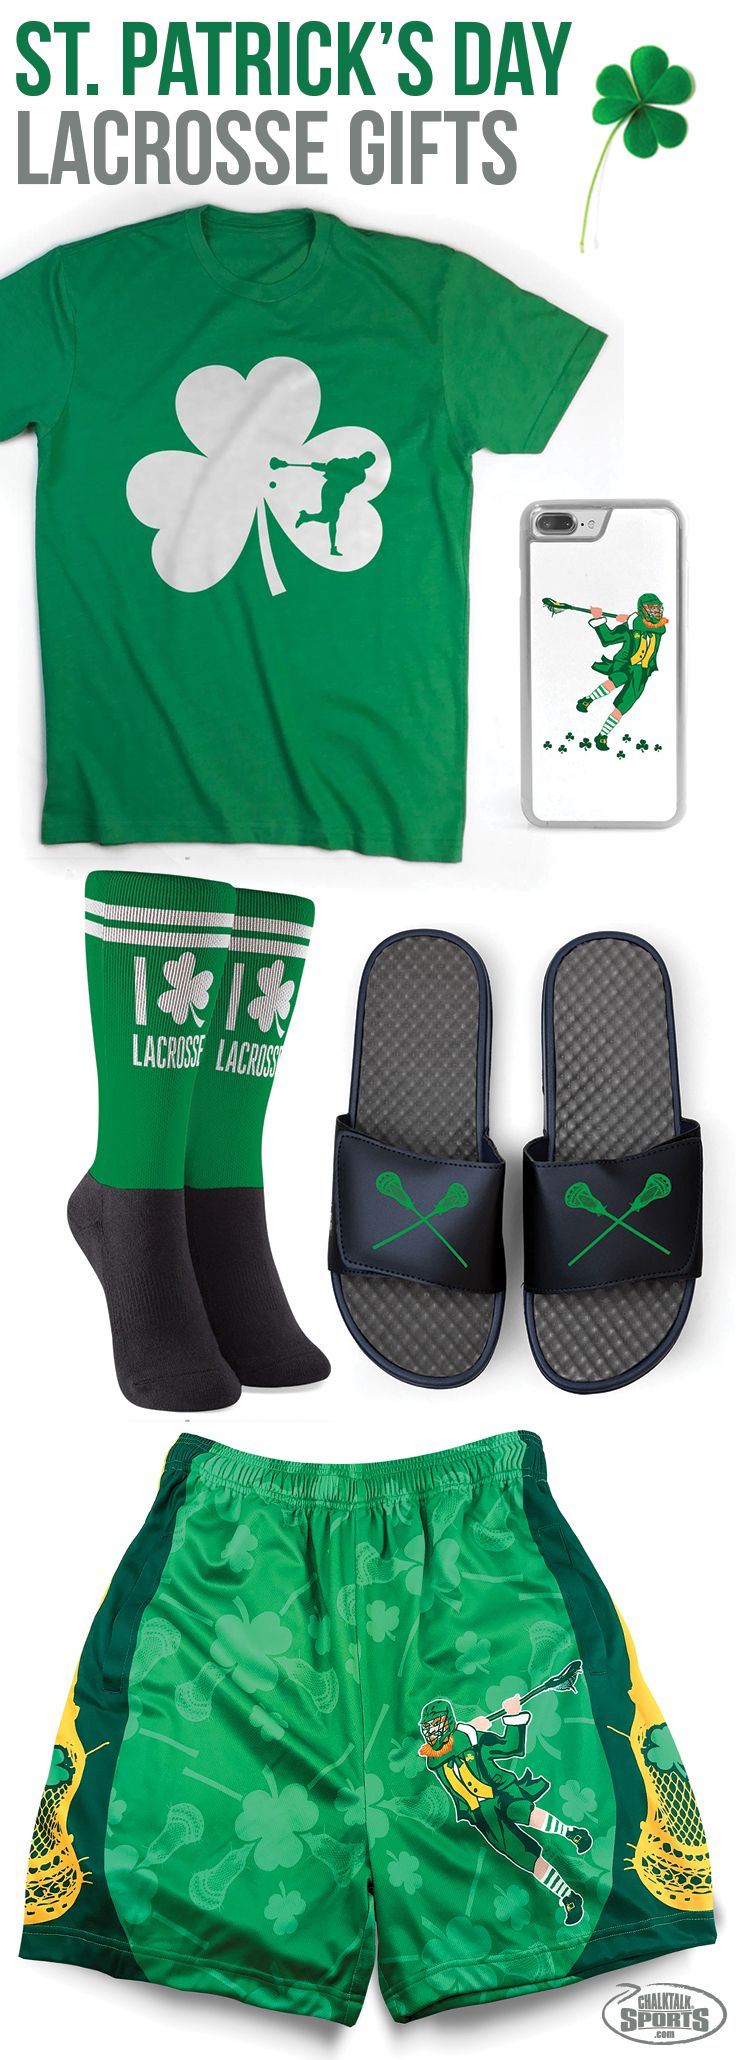 Bring the luck of the Irish with you on game day with our selection of fun and festive lacrosse St. Patrick's Day gifts!